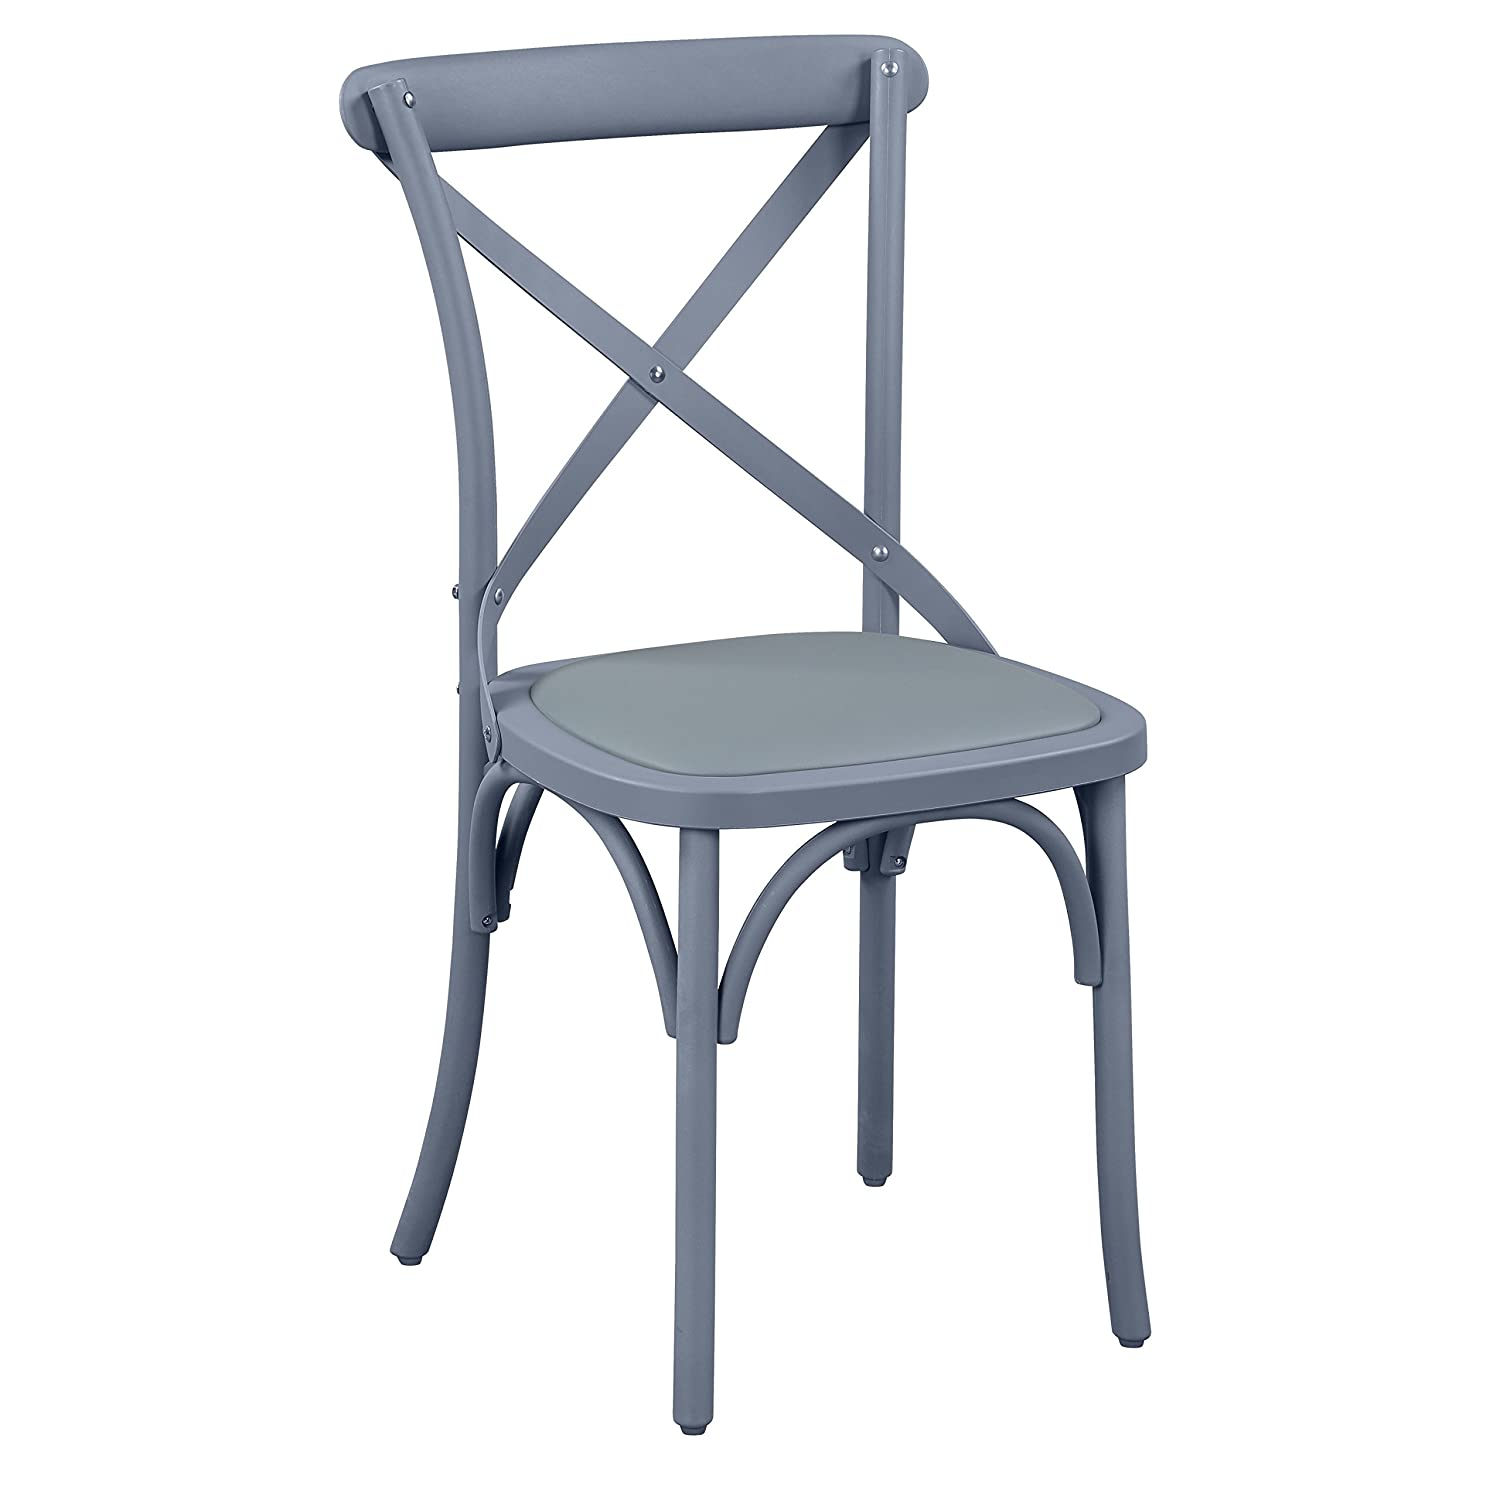 Amazon.com - Corvus Cross Back Upholstered Dining Chair (Set of 2) Grey Chairs 2